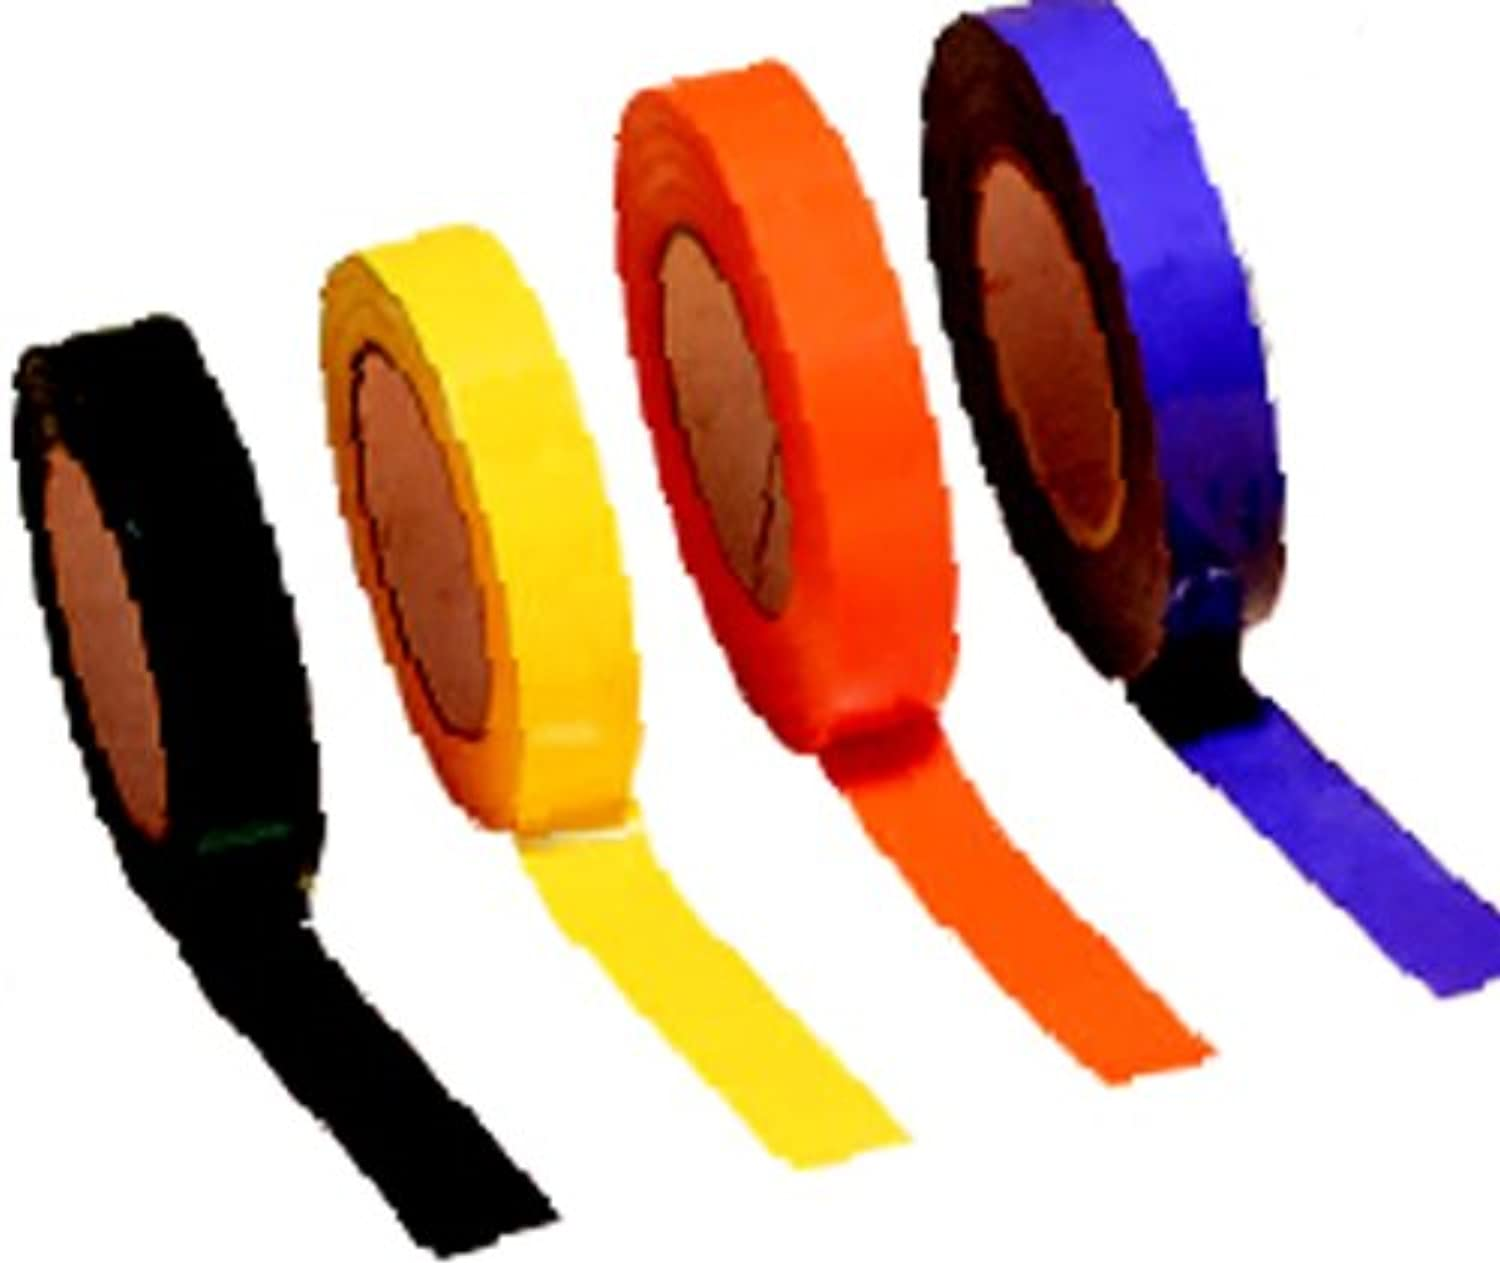 Dick Martin Sports Floor Marking Tape Red 1 X 36 Yd by Dick Martin Sports